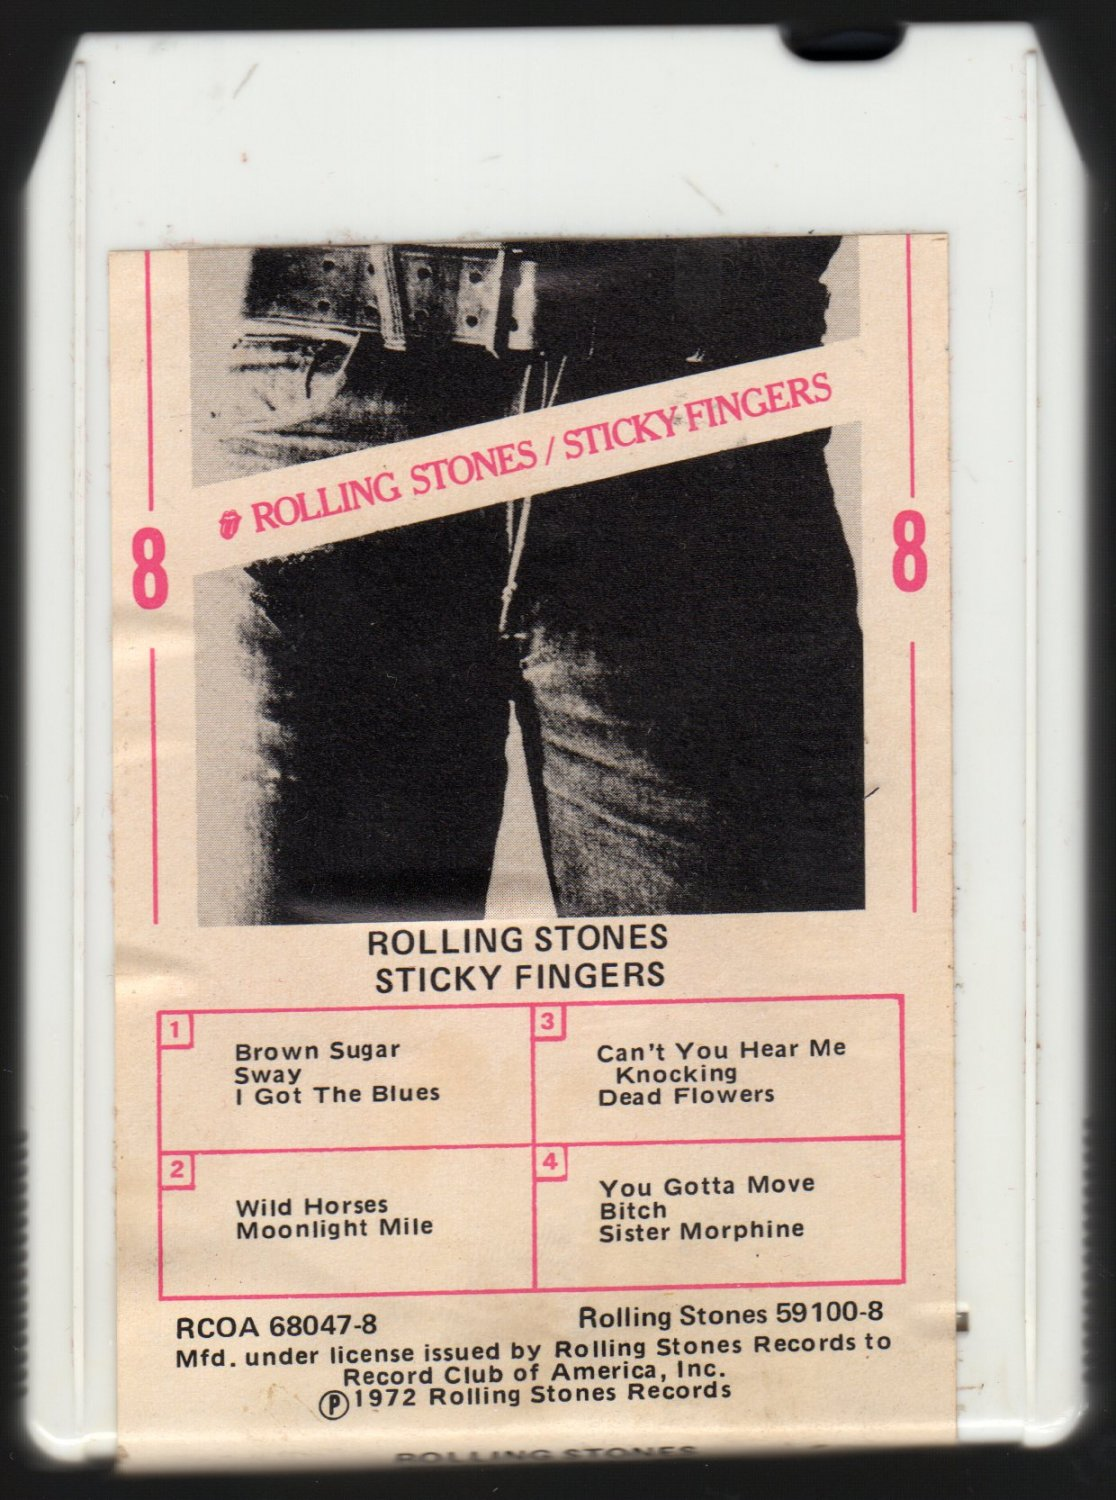 The Rolling Stones - Sticky Fingers 1971 RCA A4 8-TRACK TAPE